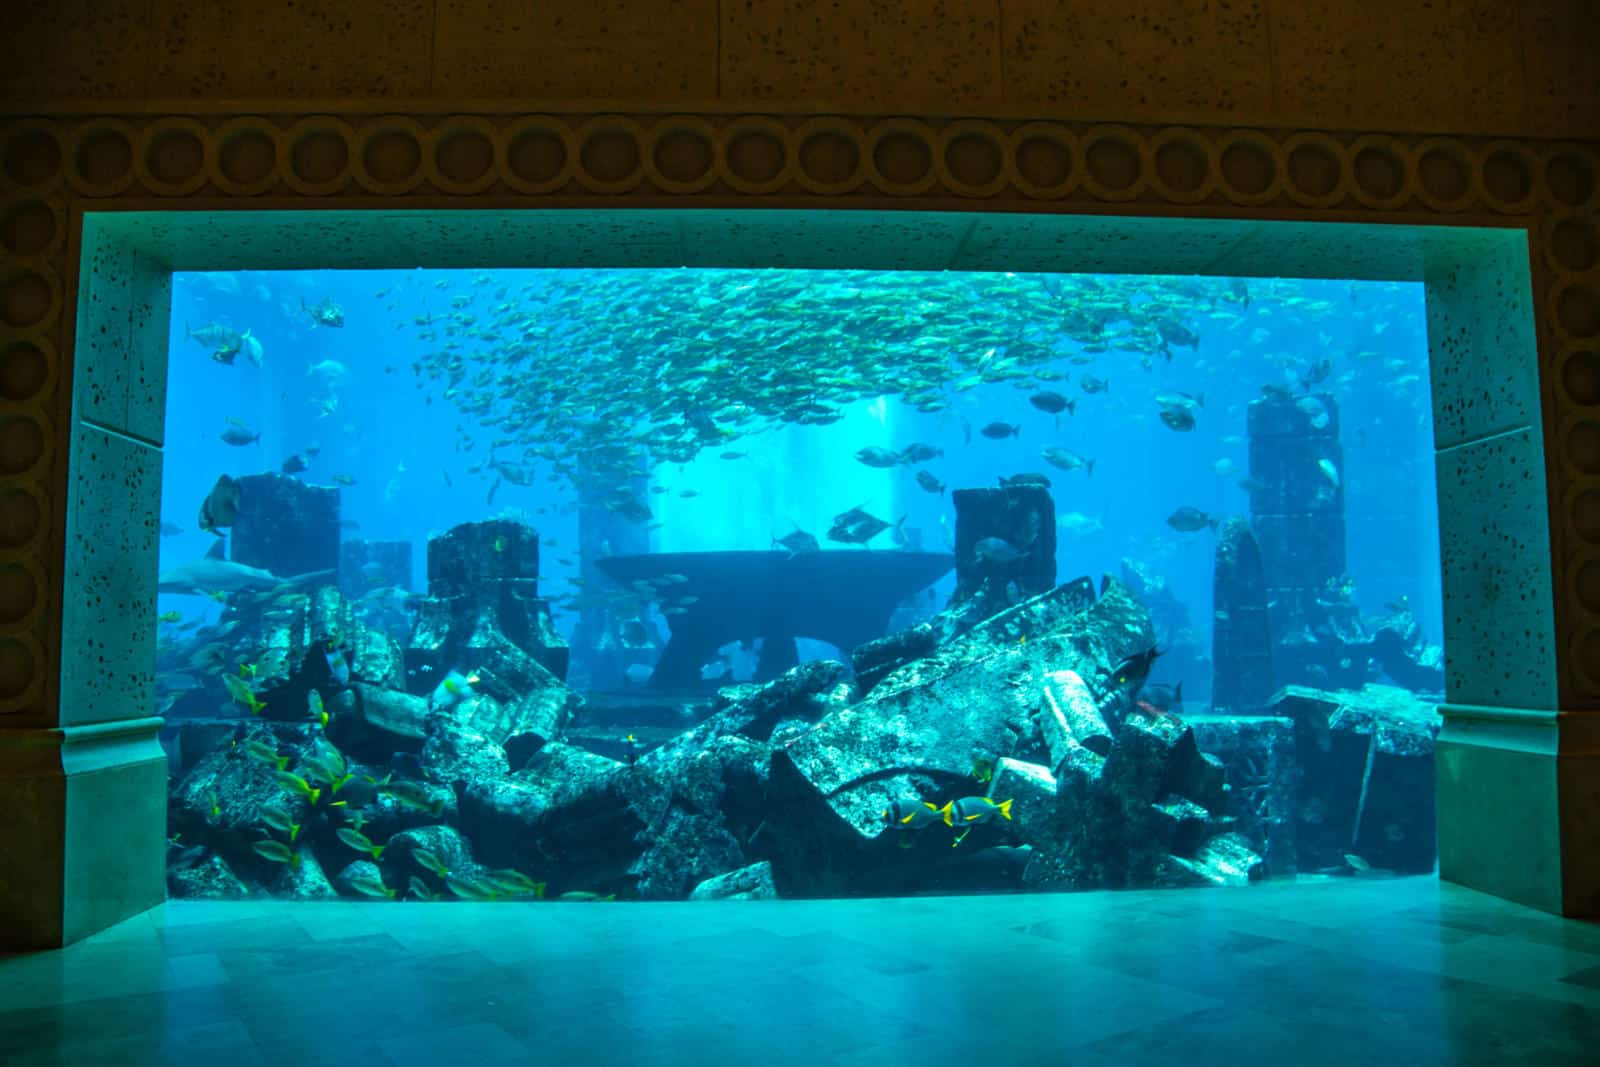 The Atlantis - one of the best things to do on the Palm Dubai